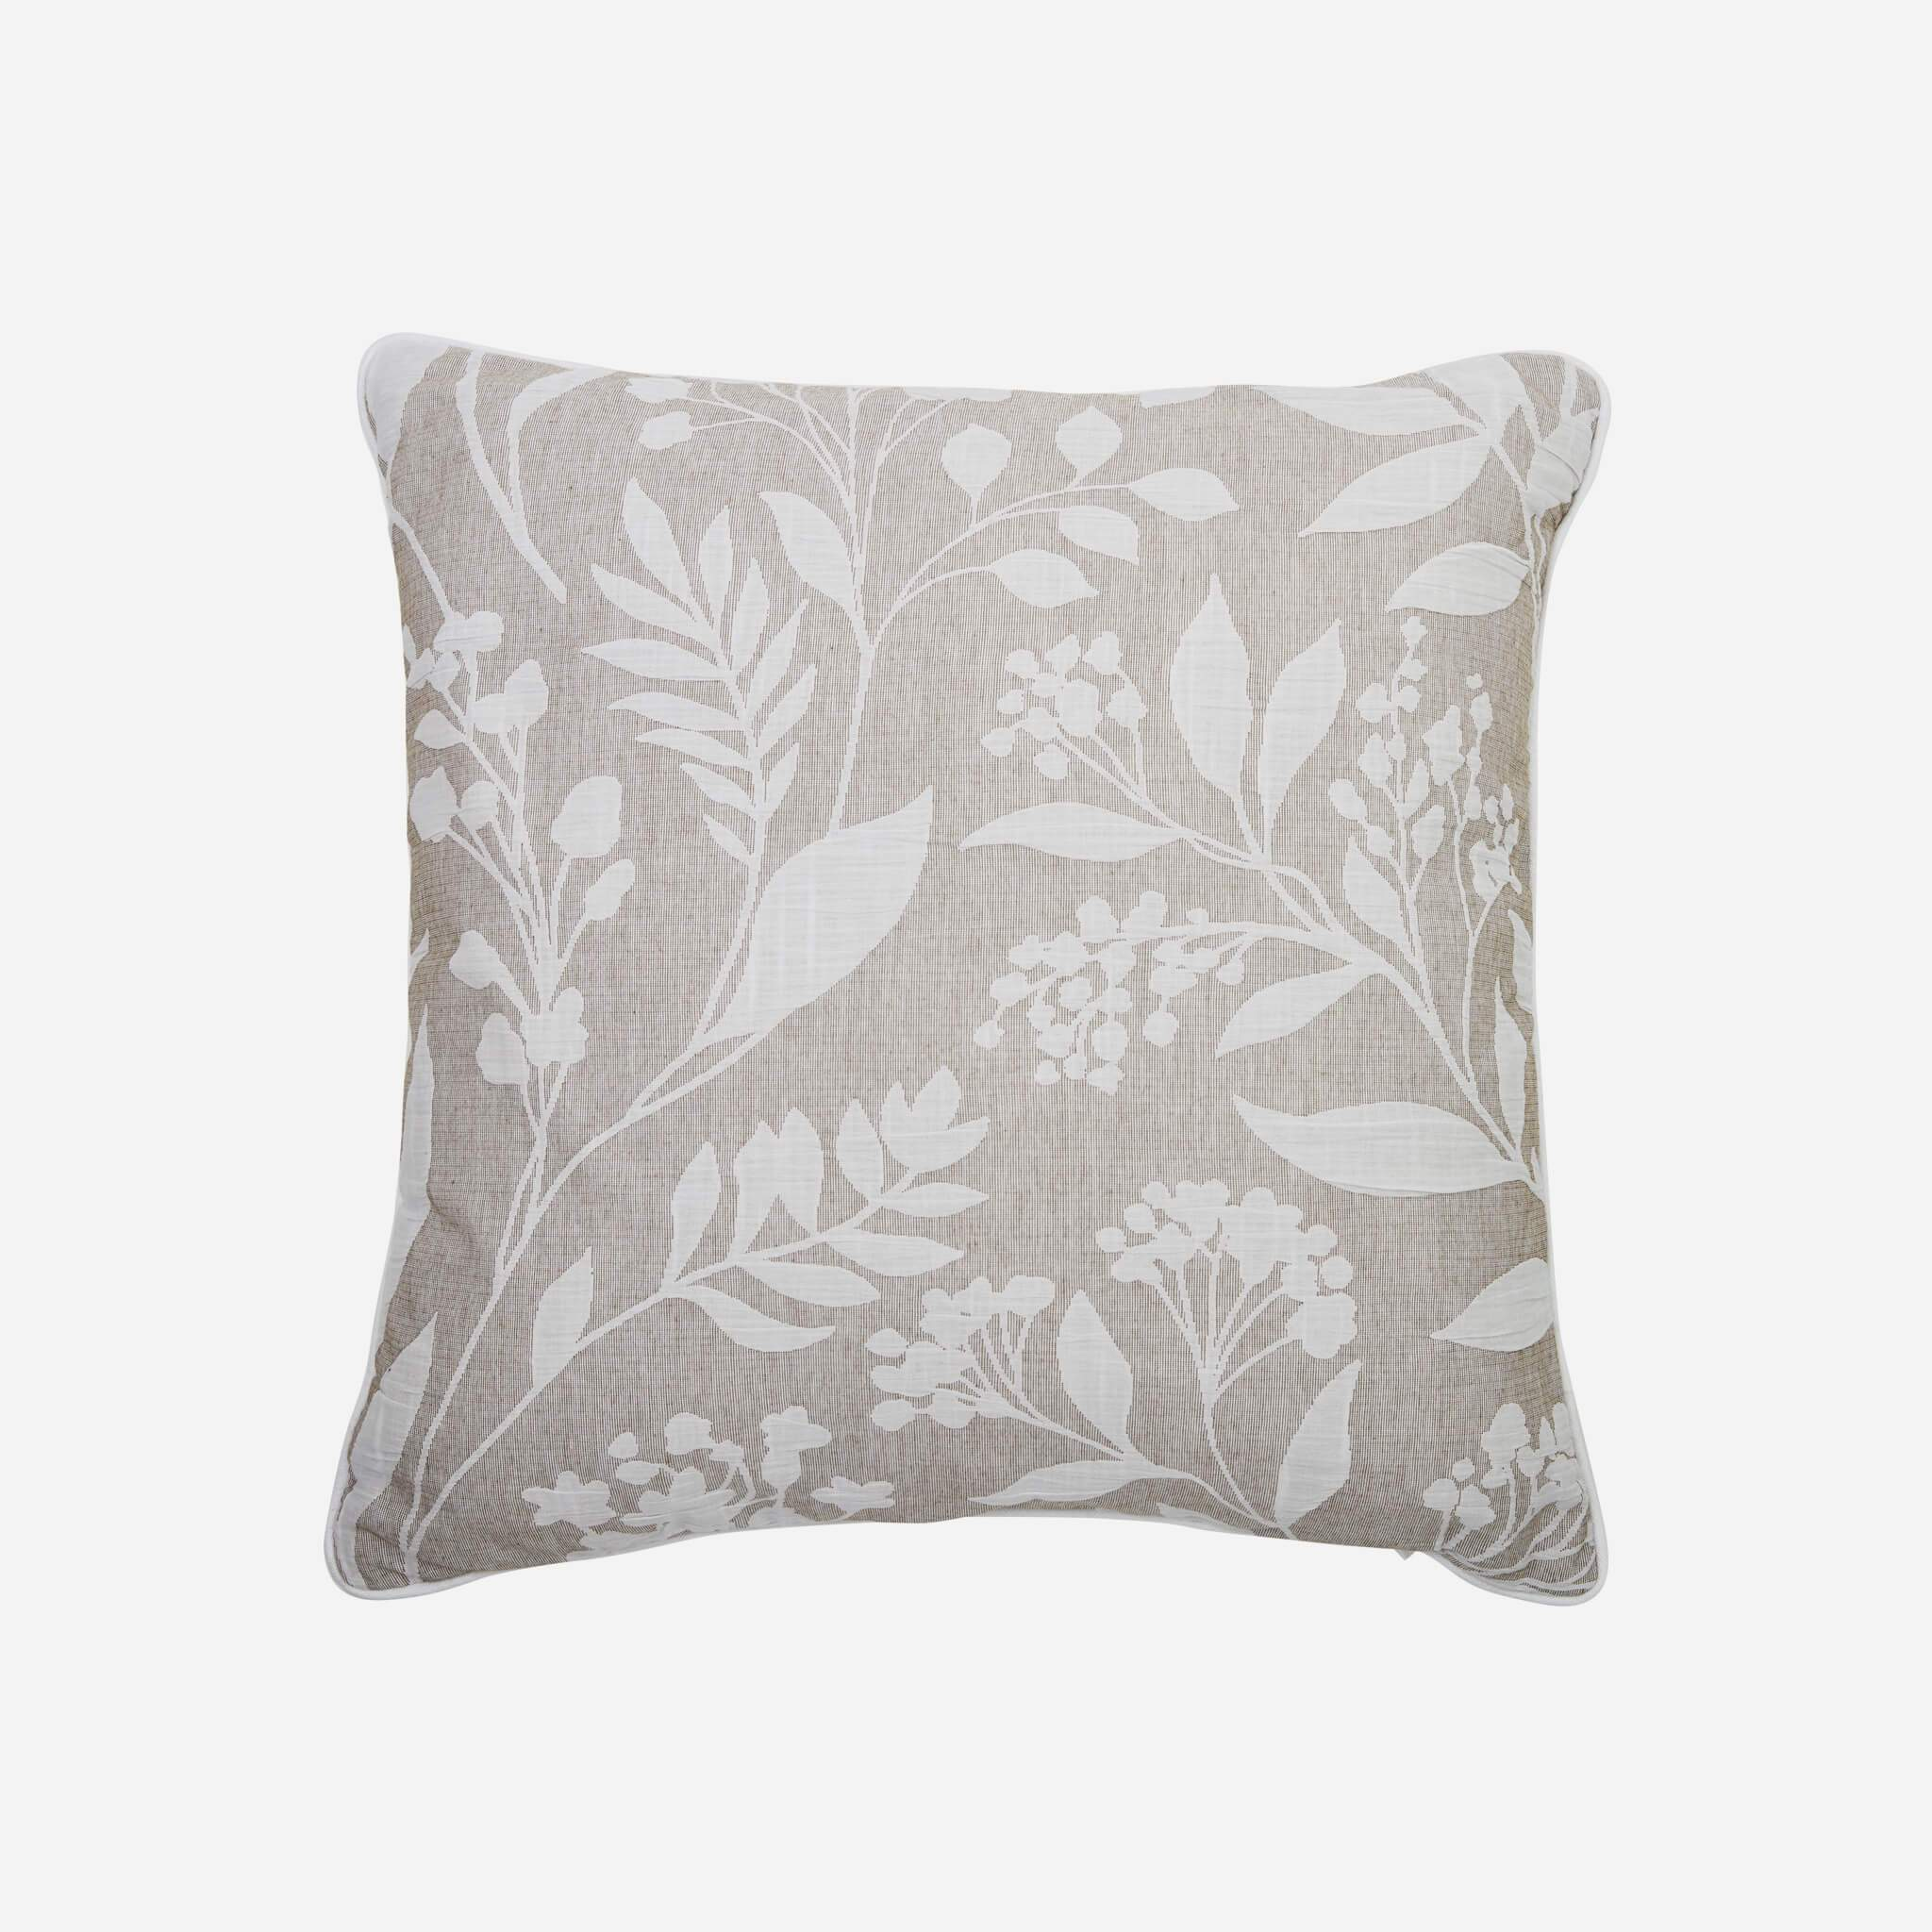 Layla Square Pillow